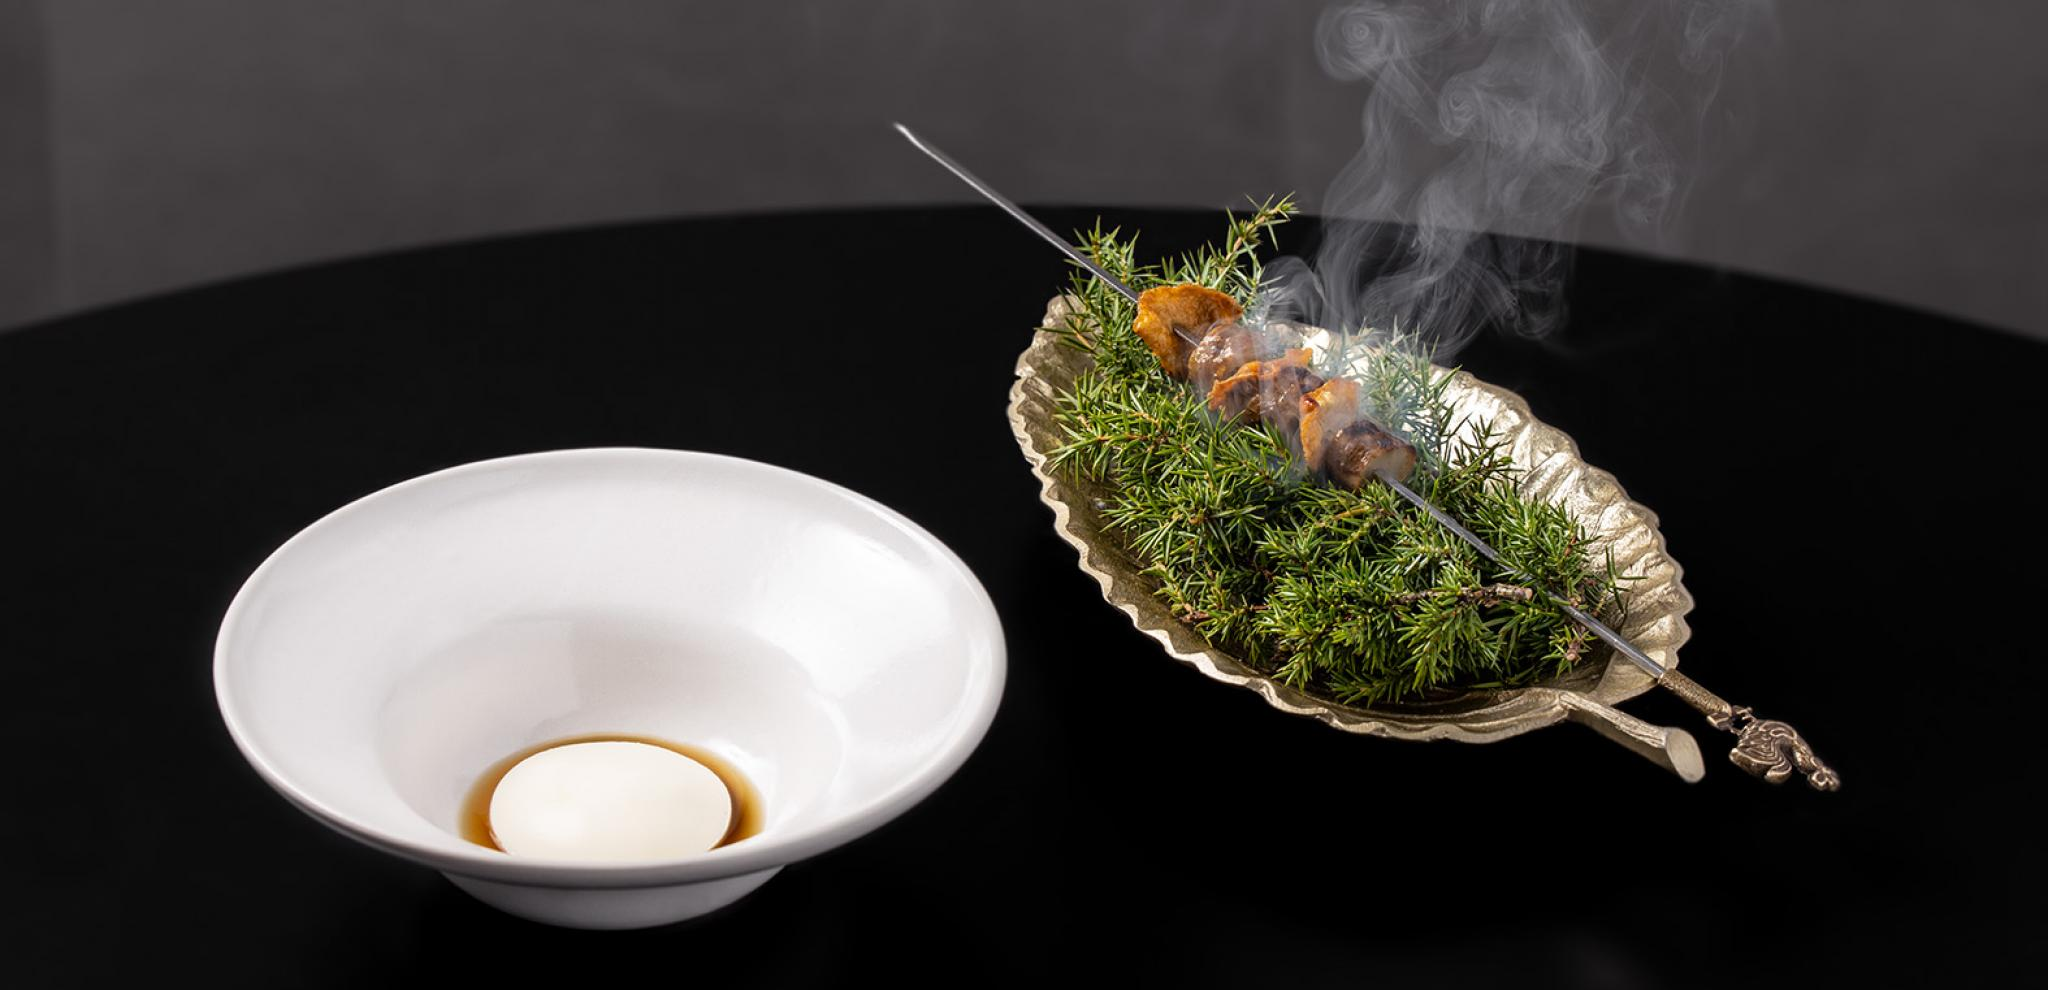 Warm food dish with white plate on black table